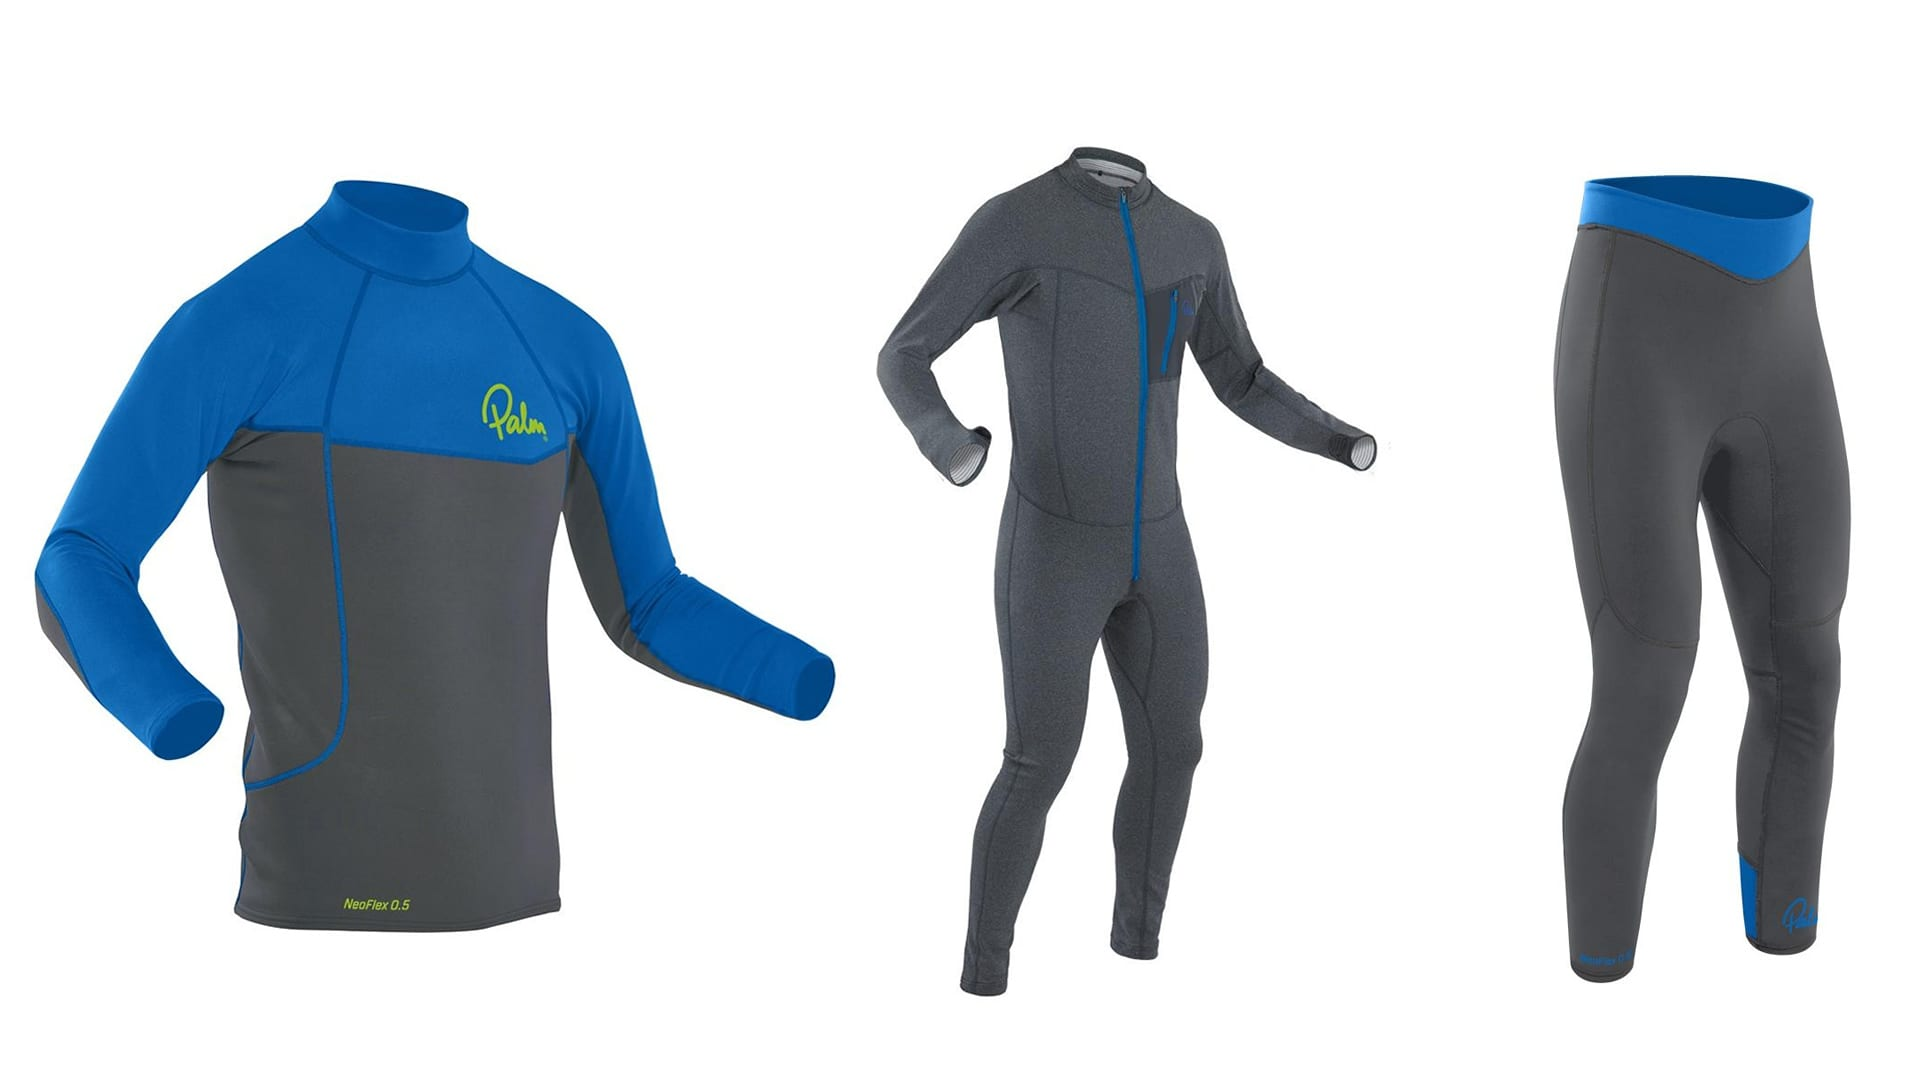 ROPA PARA PRACTICAR KAYAK